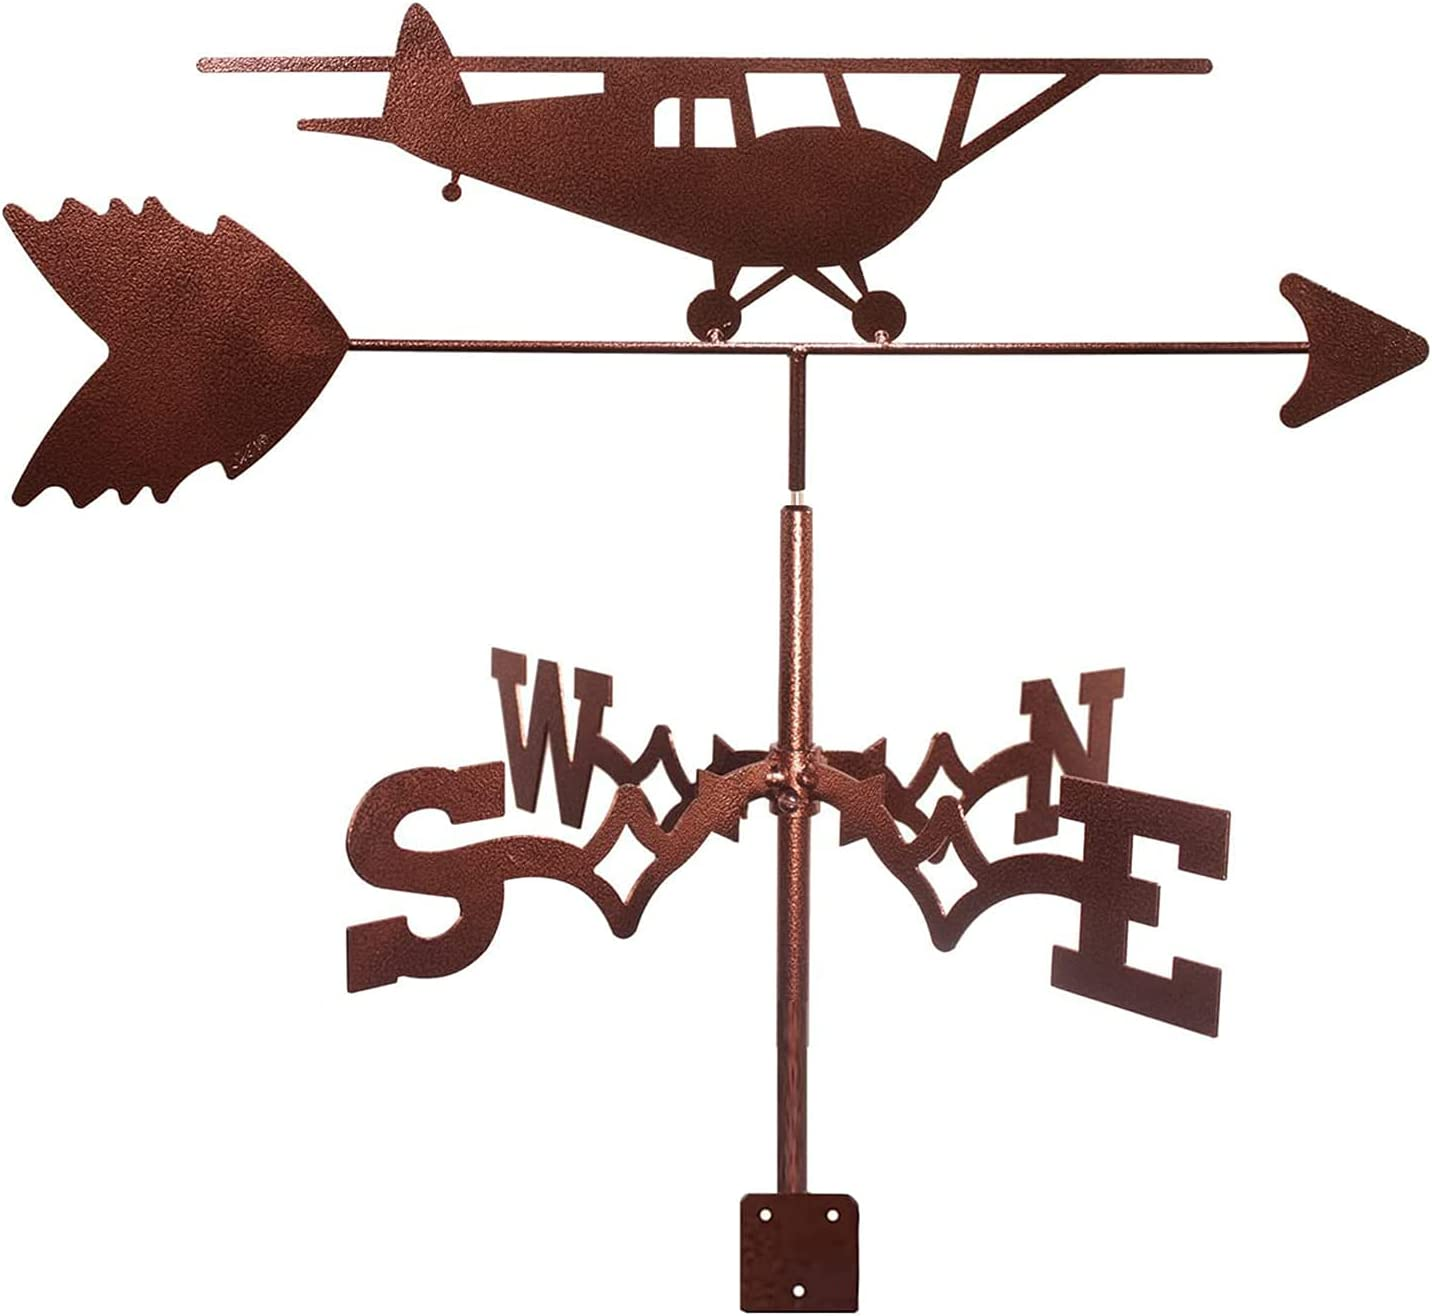 Weathervane Helicopter Stainless Max 56% OFF Steel Weather Meta Vane safety Outdoor